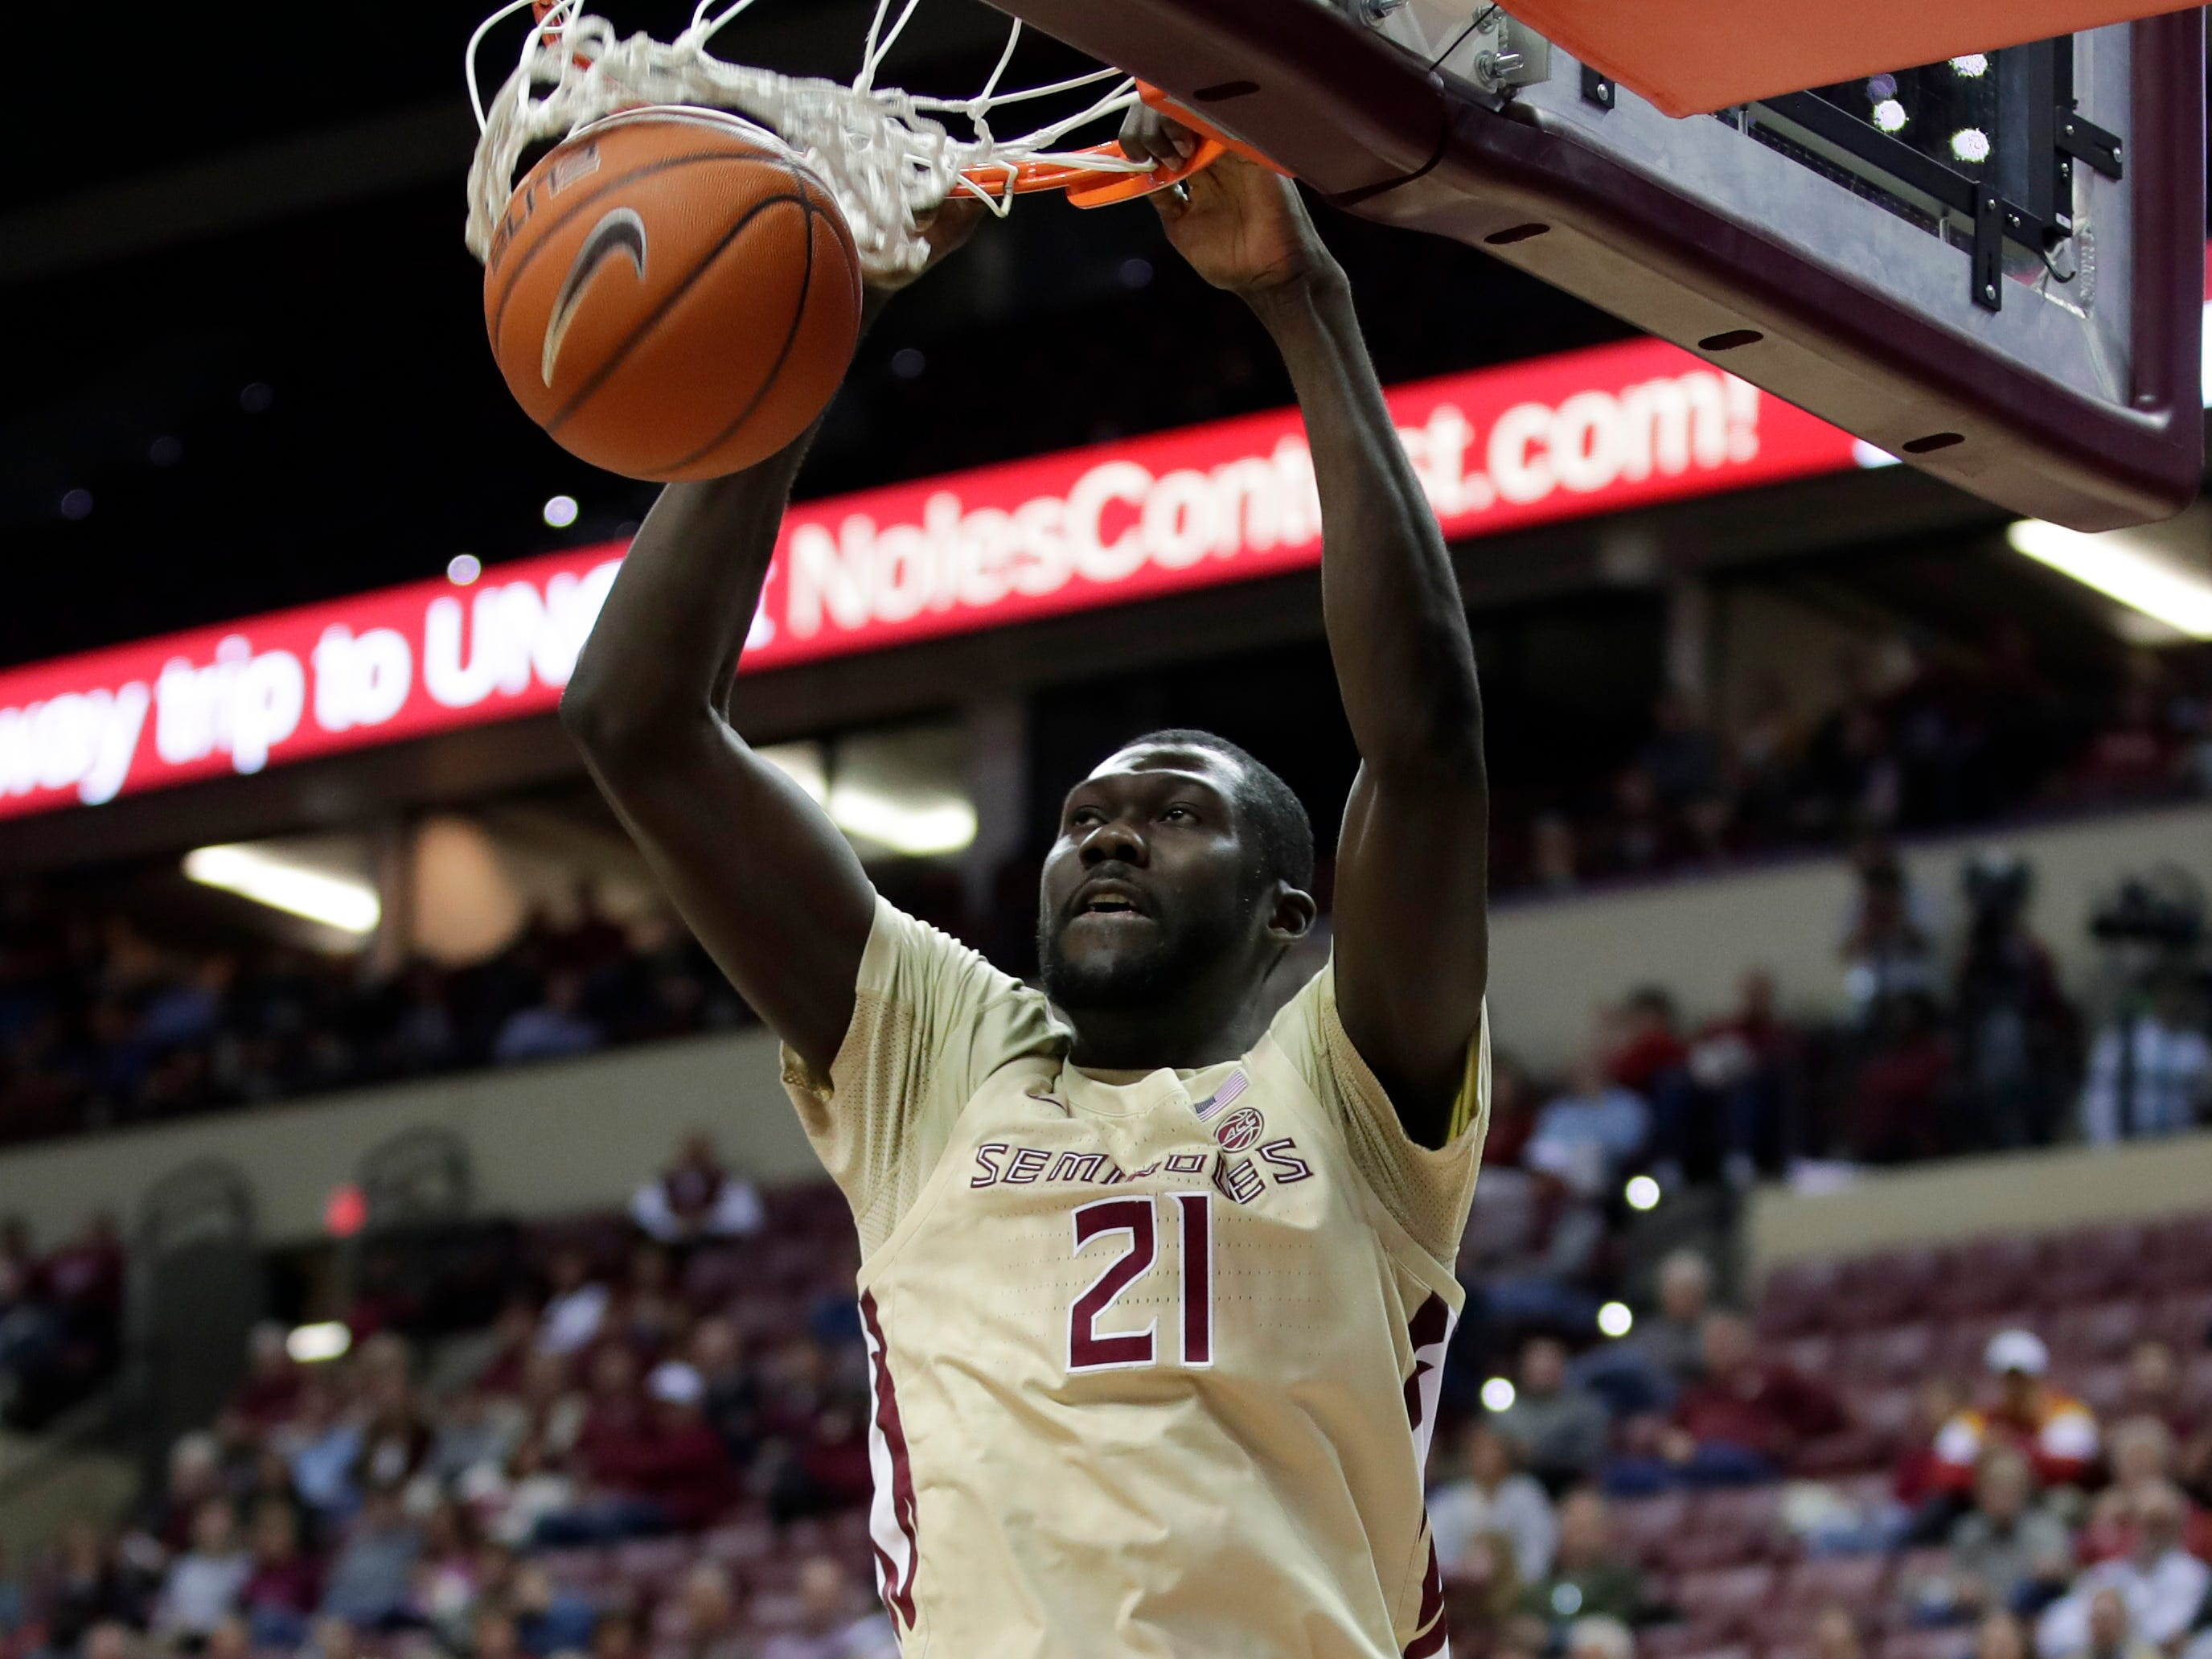 Florida State Seminoles center Christ Koumadje (21) dunks during a game between FSU and Wake Forest at the Donald L. Tucker Civic Center Wednesday, Feb. 13, 2019.